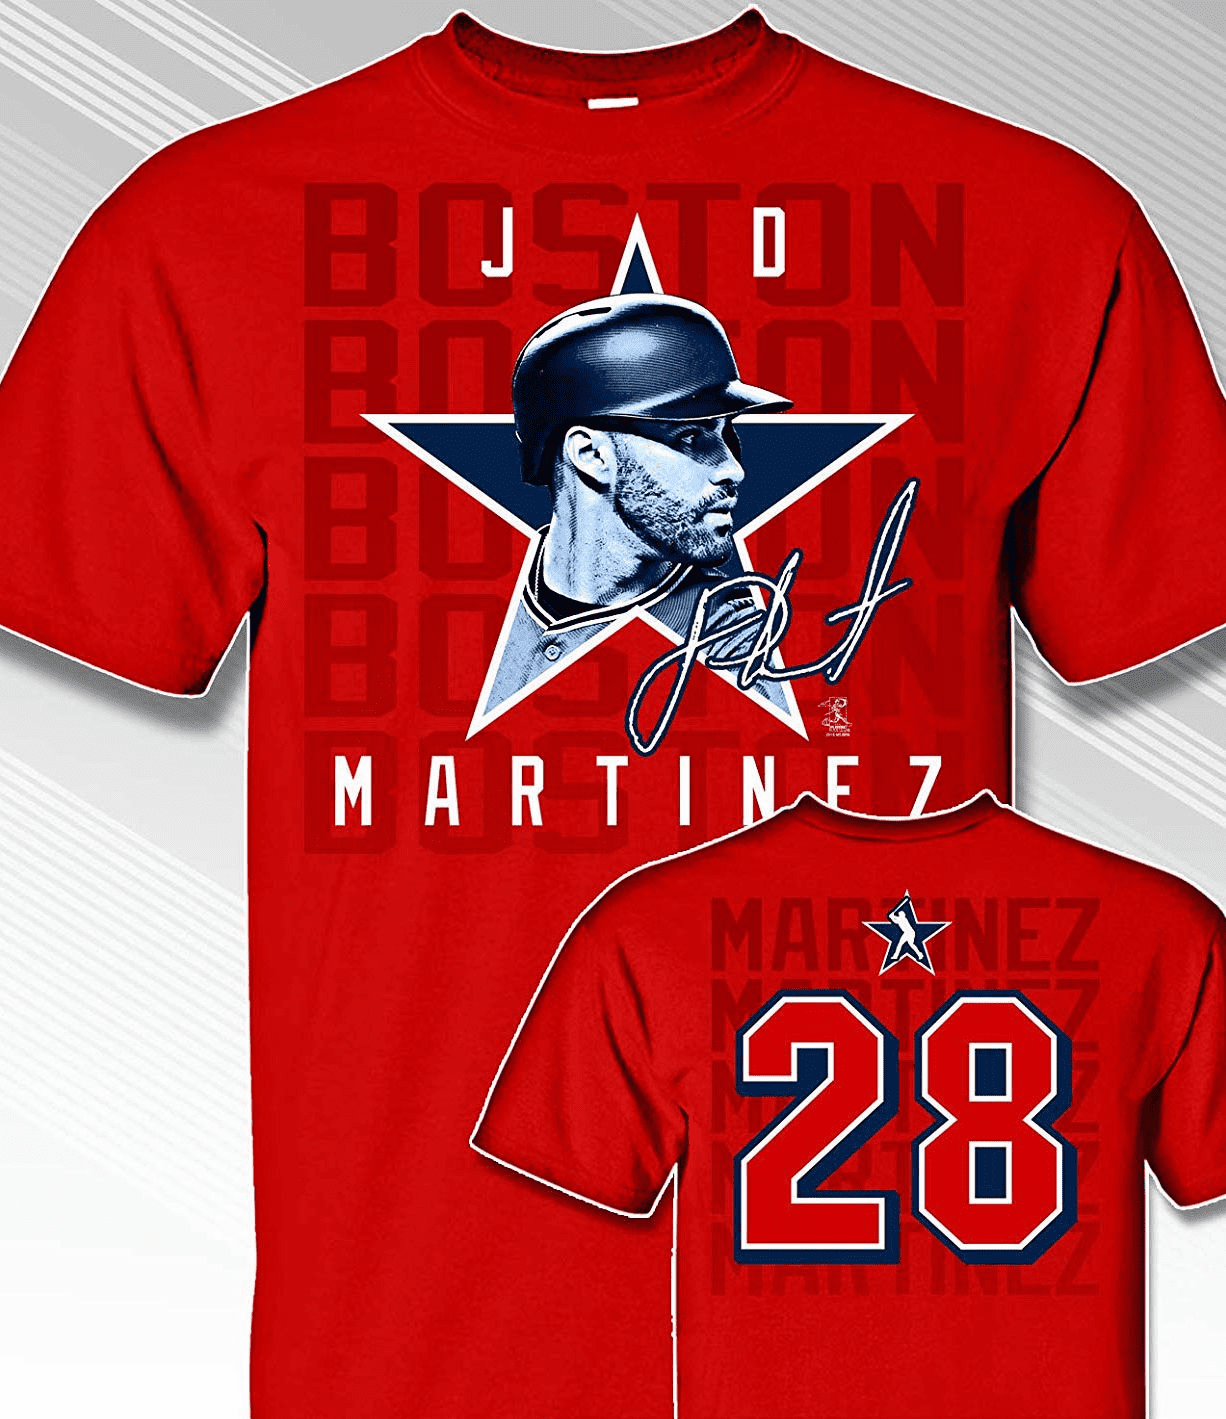 JD Martinez Star Power T-Shirt<br>Short or Long Sleeve<br>Youth Med to Adult 4X